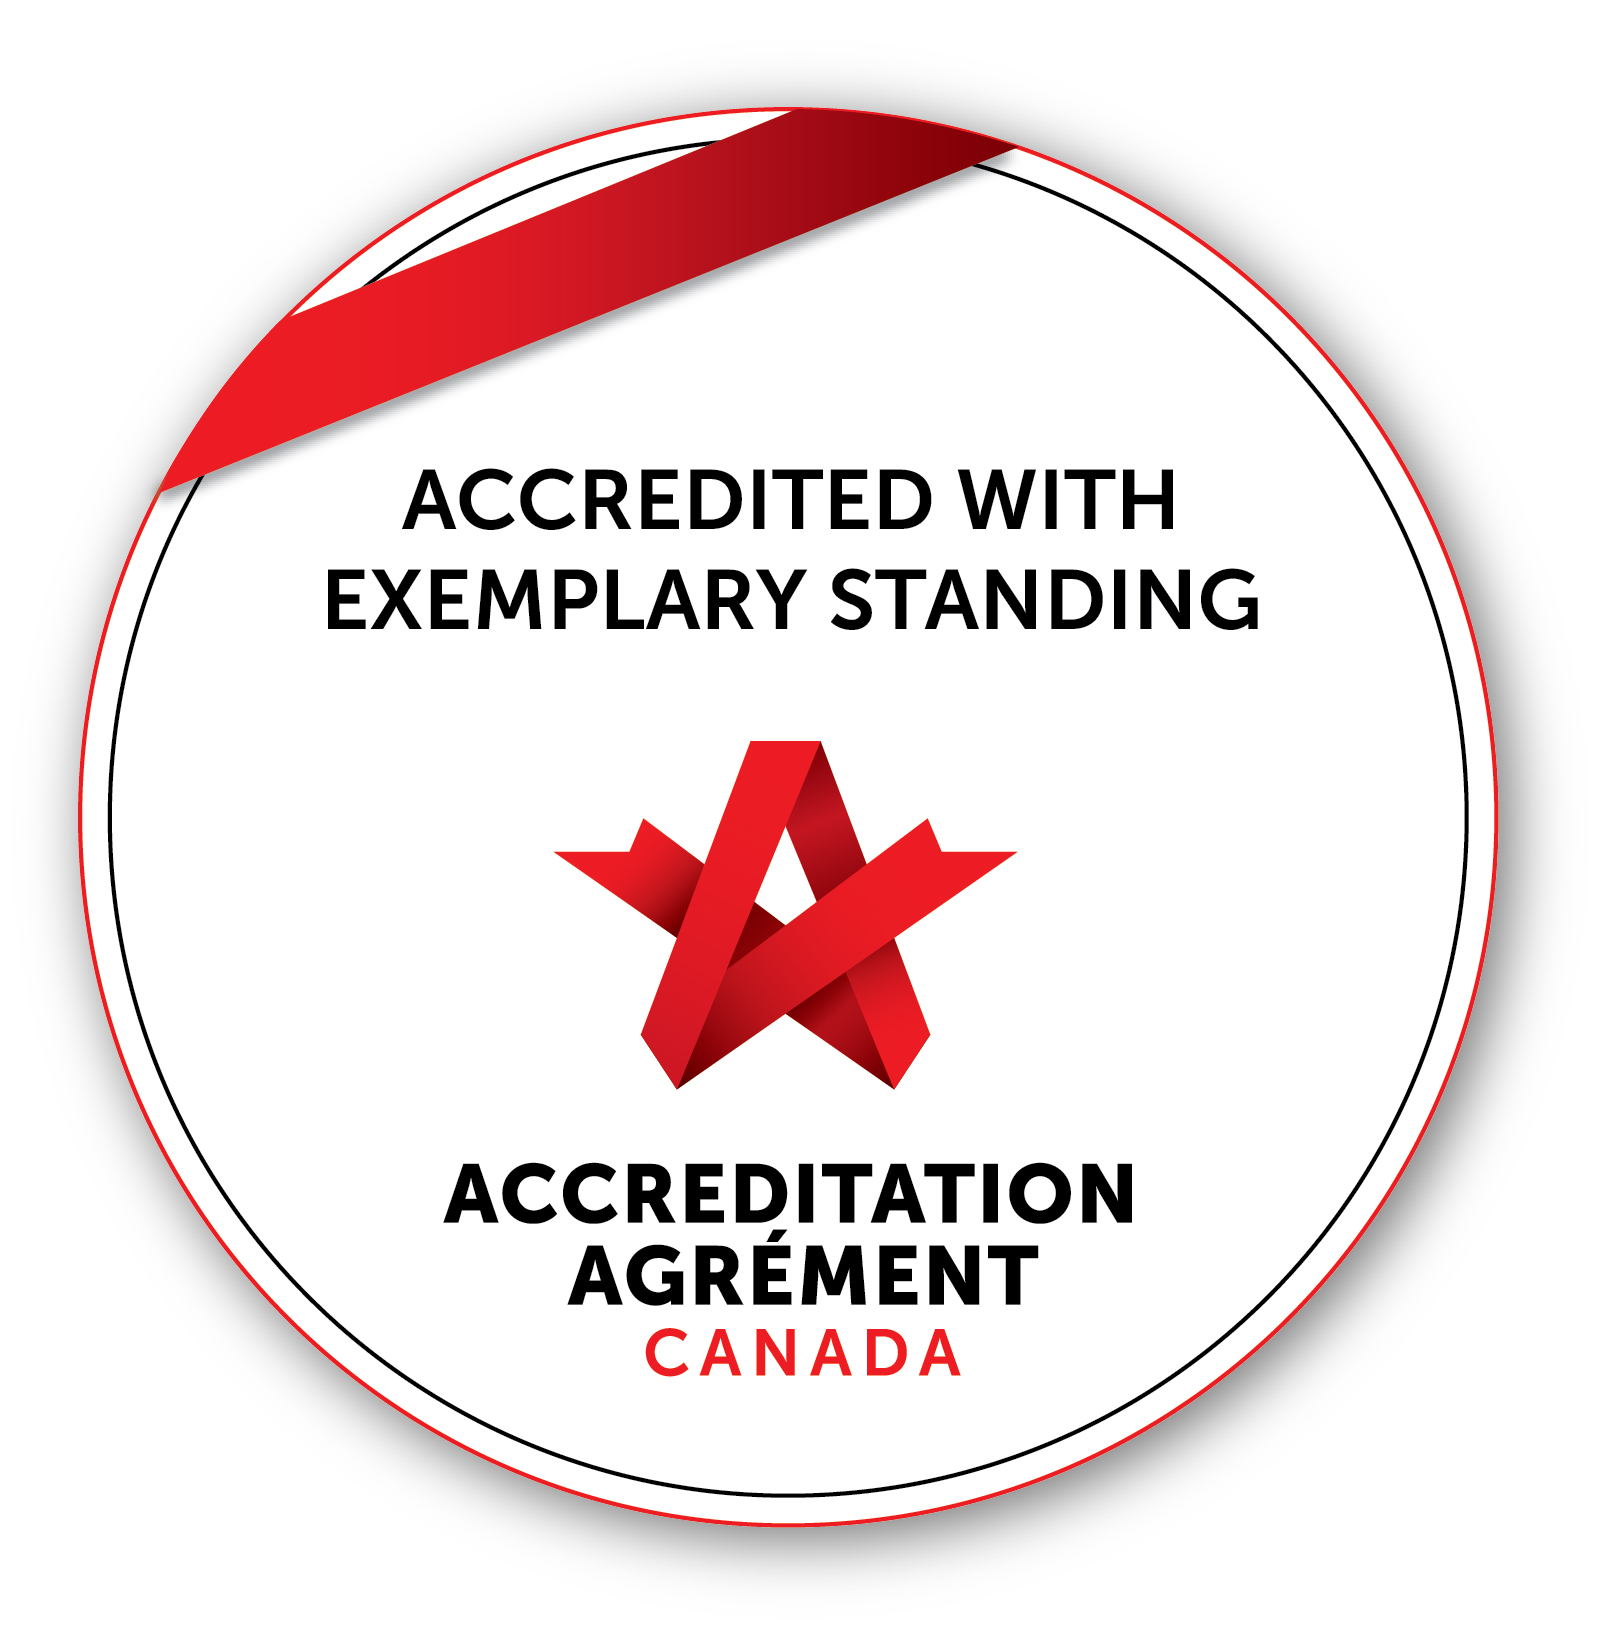 Accreditation with Exemplary Standing Seal